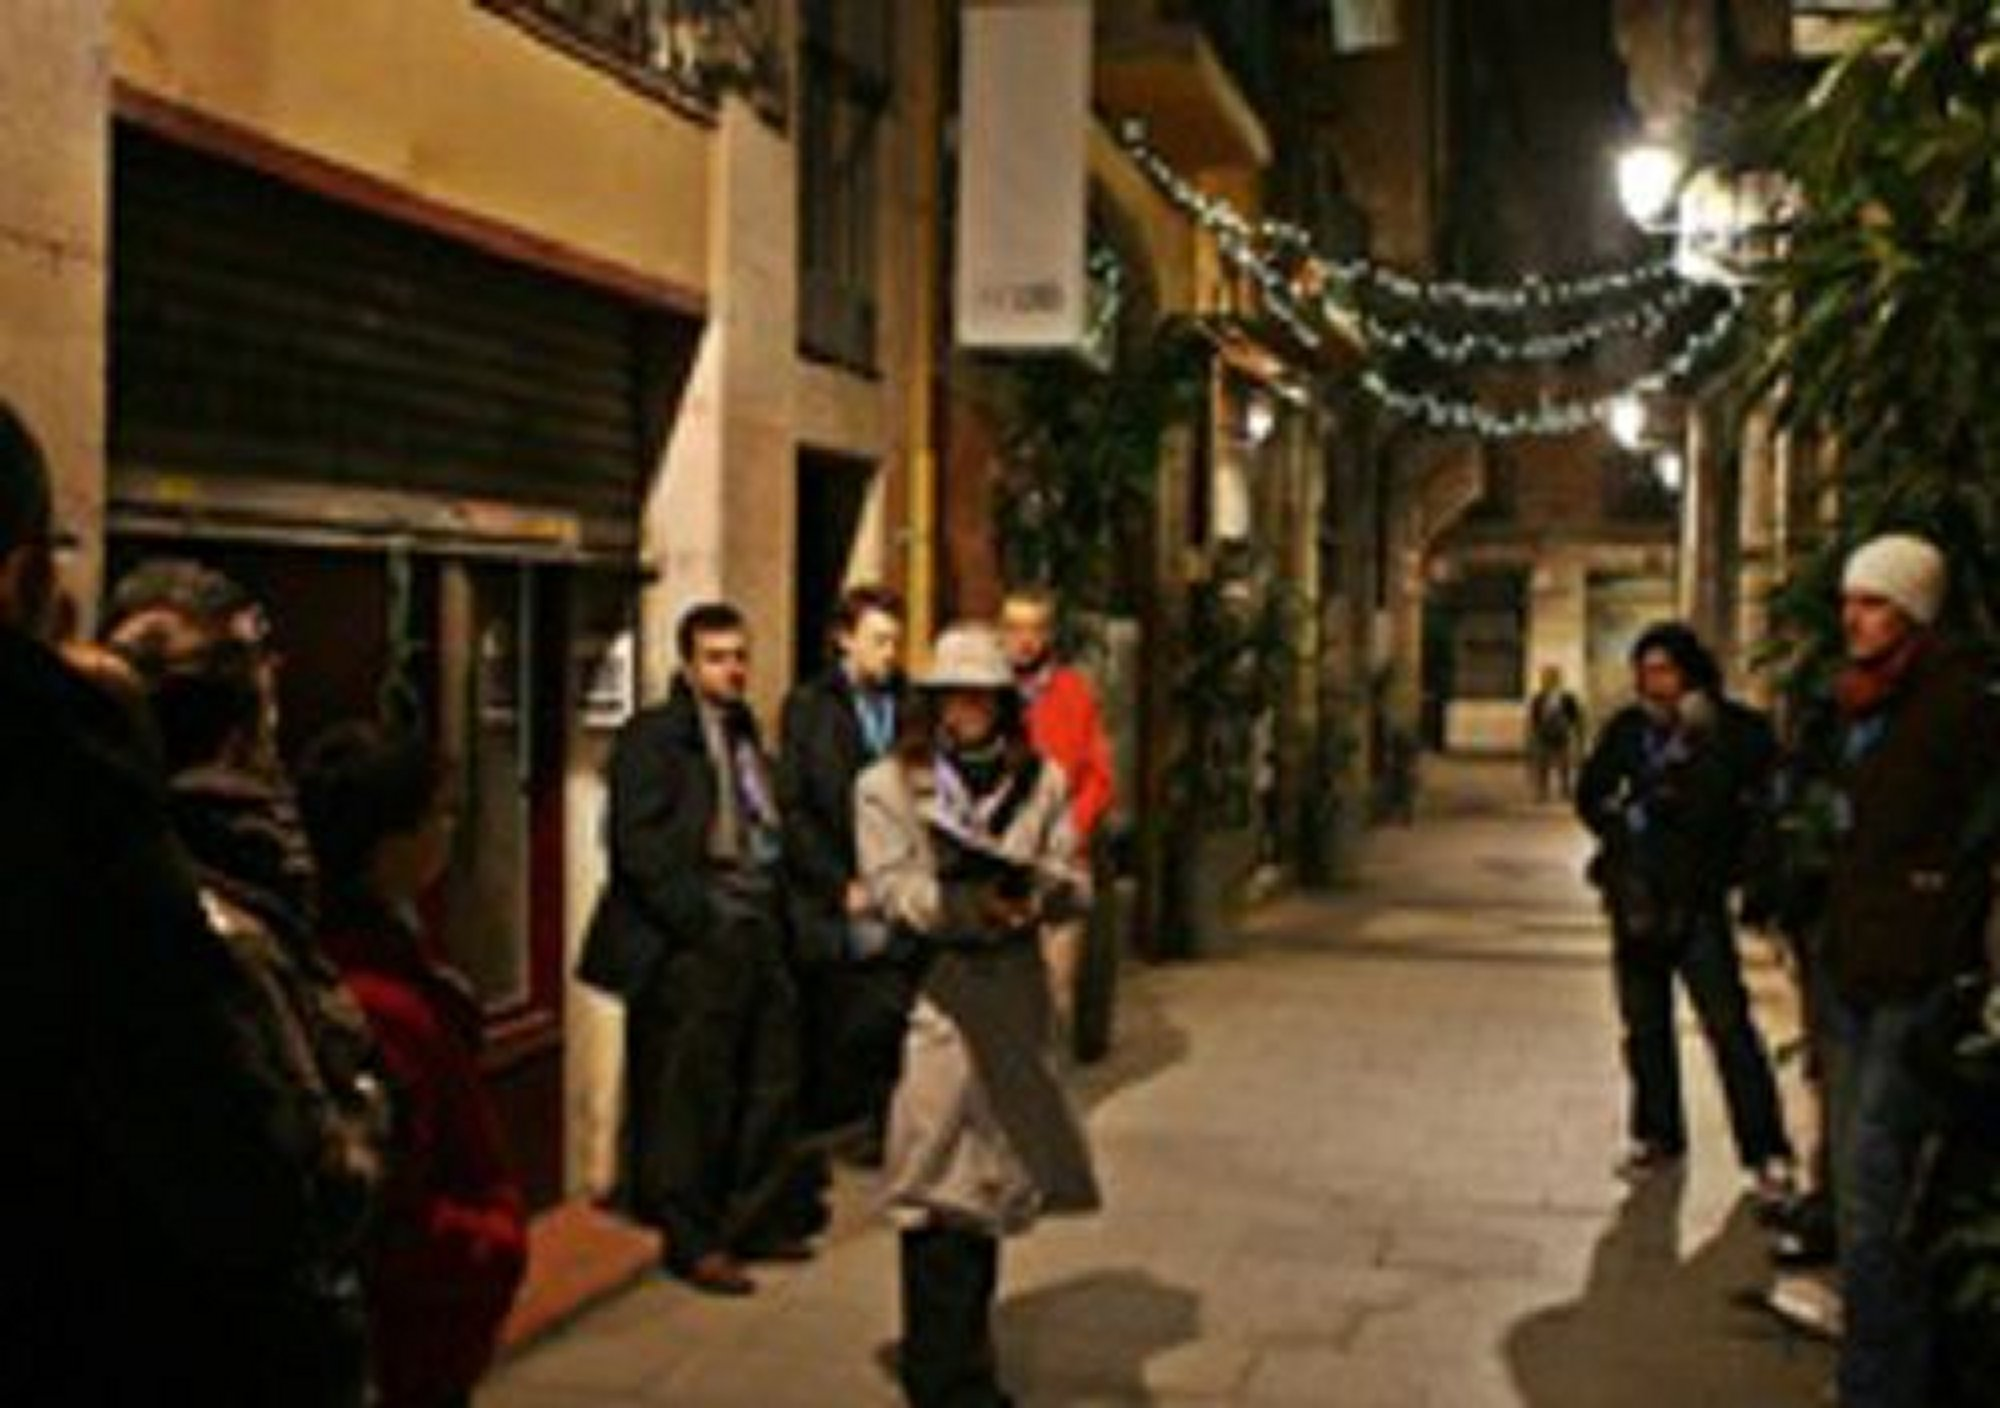 book reserve get online Walking Tours visits Ghosts of Barcelona